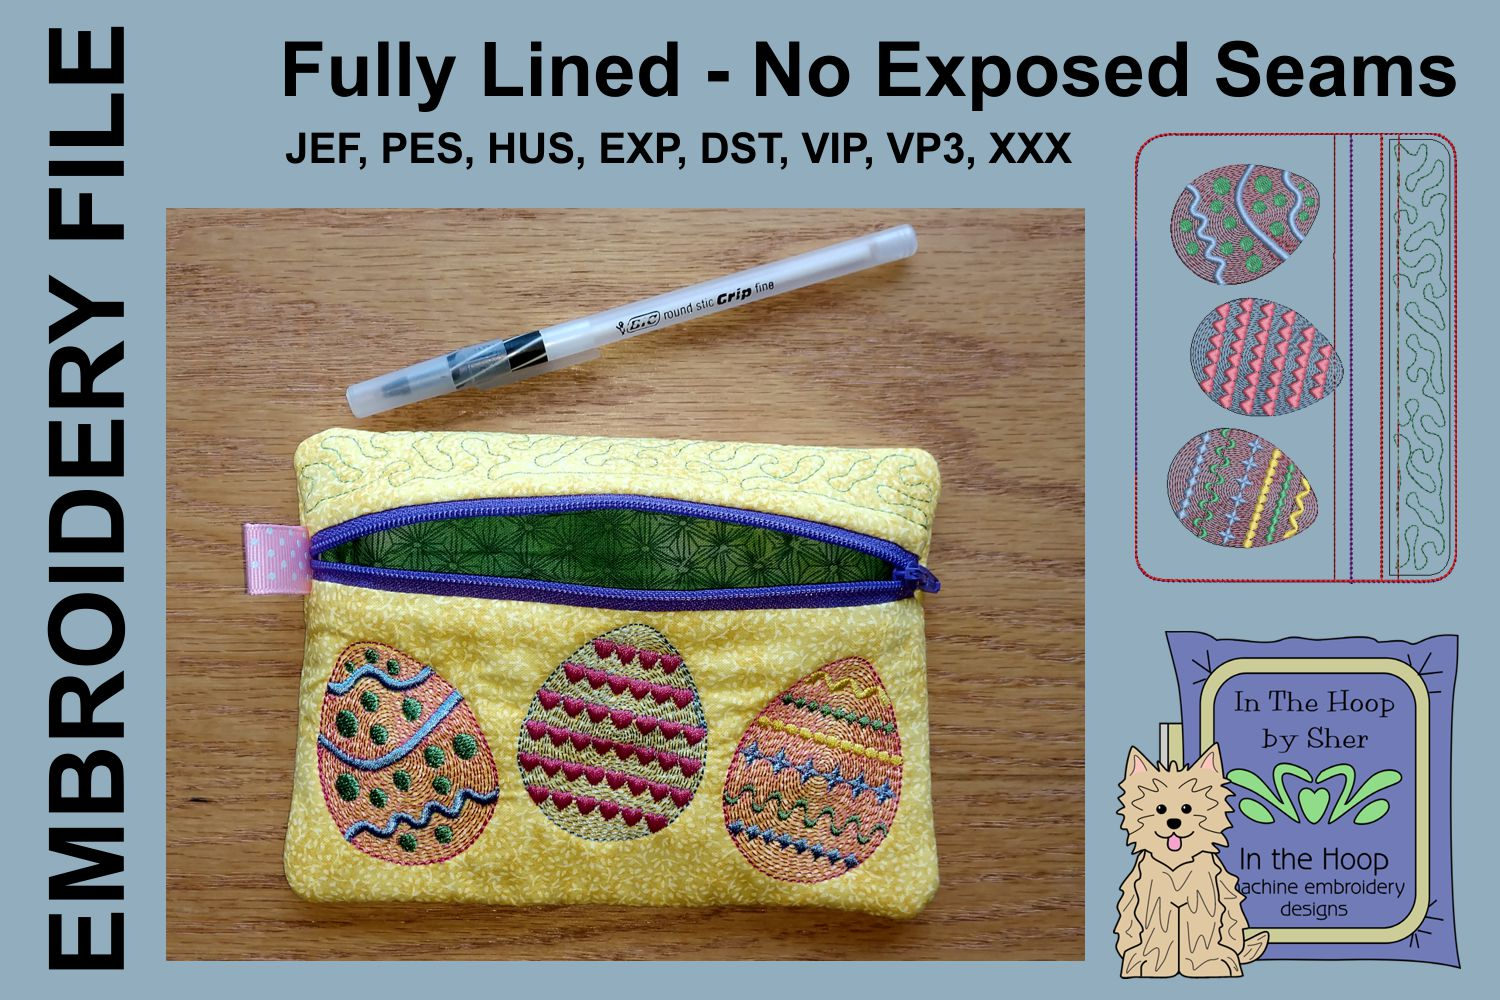 ITH Easter Eggs Zipper Bag - Fully Lined, 5X7 HOOP example image 2